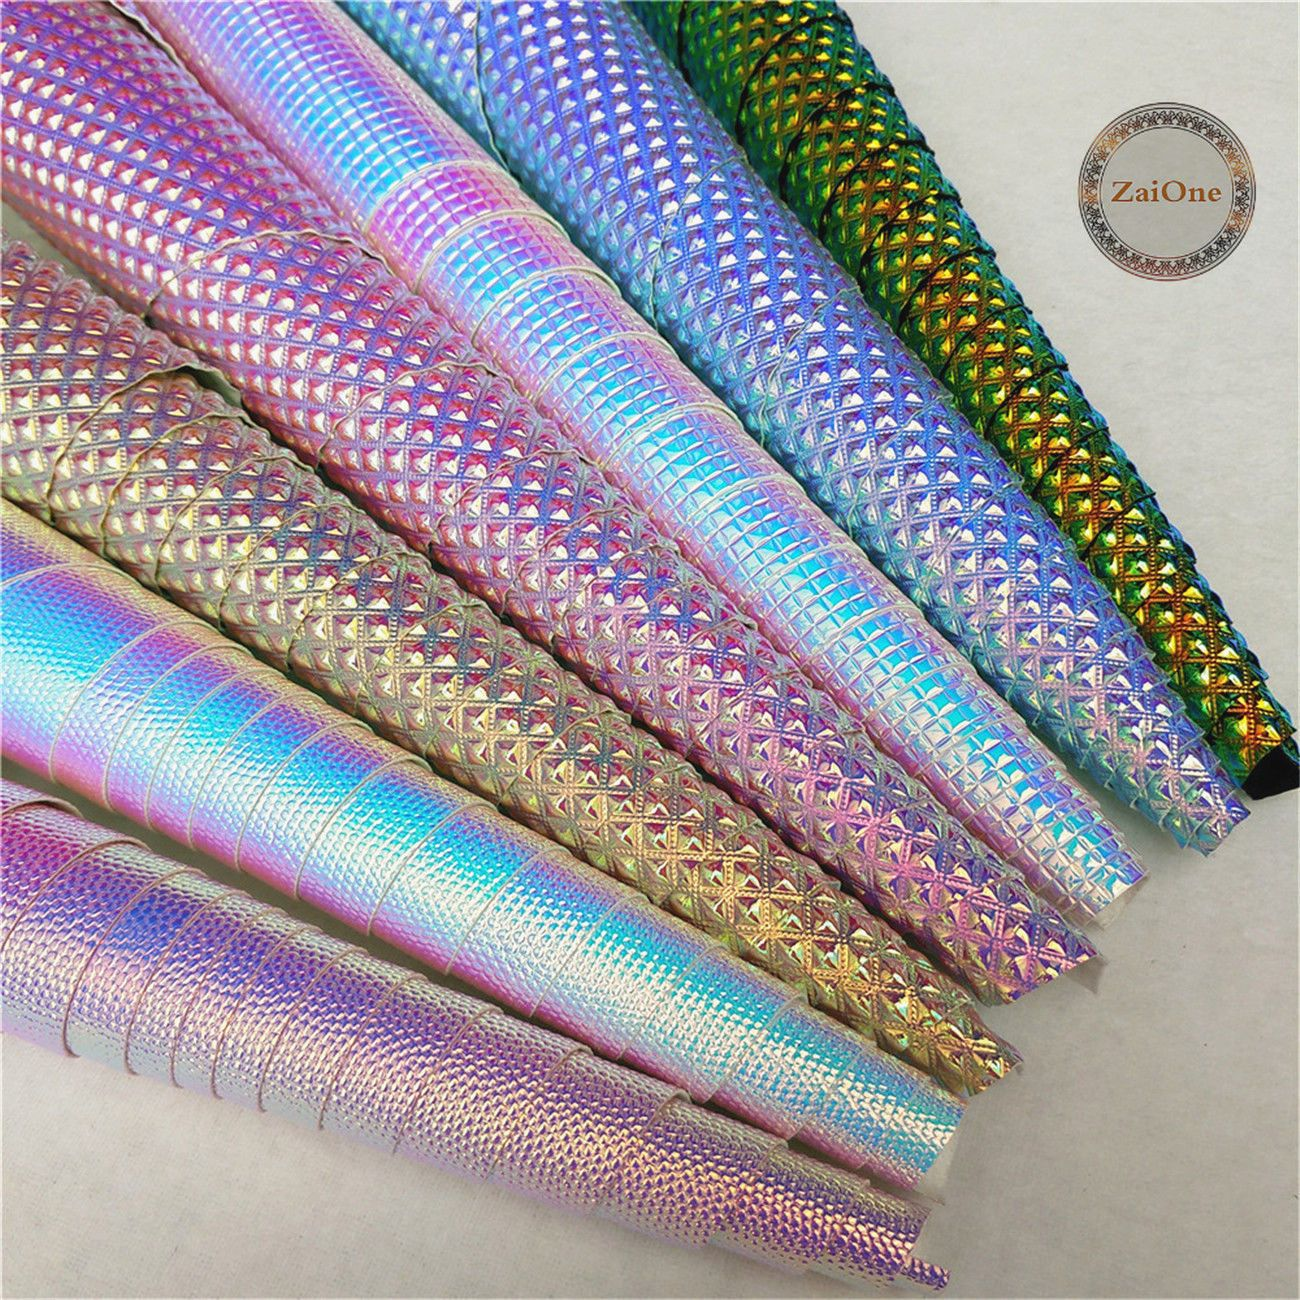 Holographic Pebble Grain Faux Leather Fabric Pieces Material Crafts Vinyl Sewing